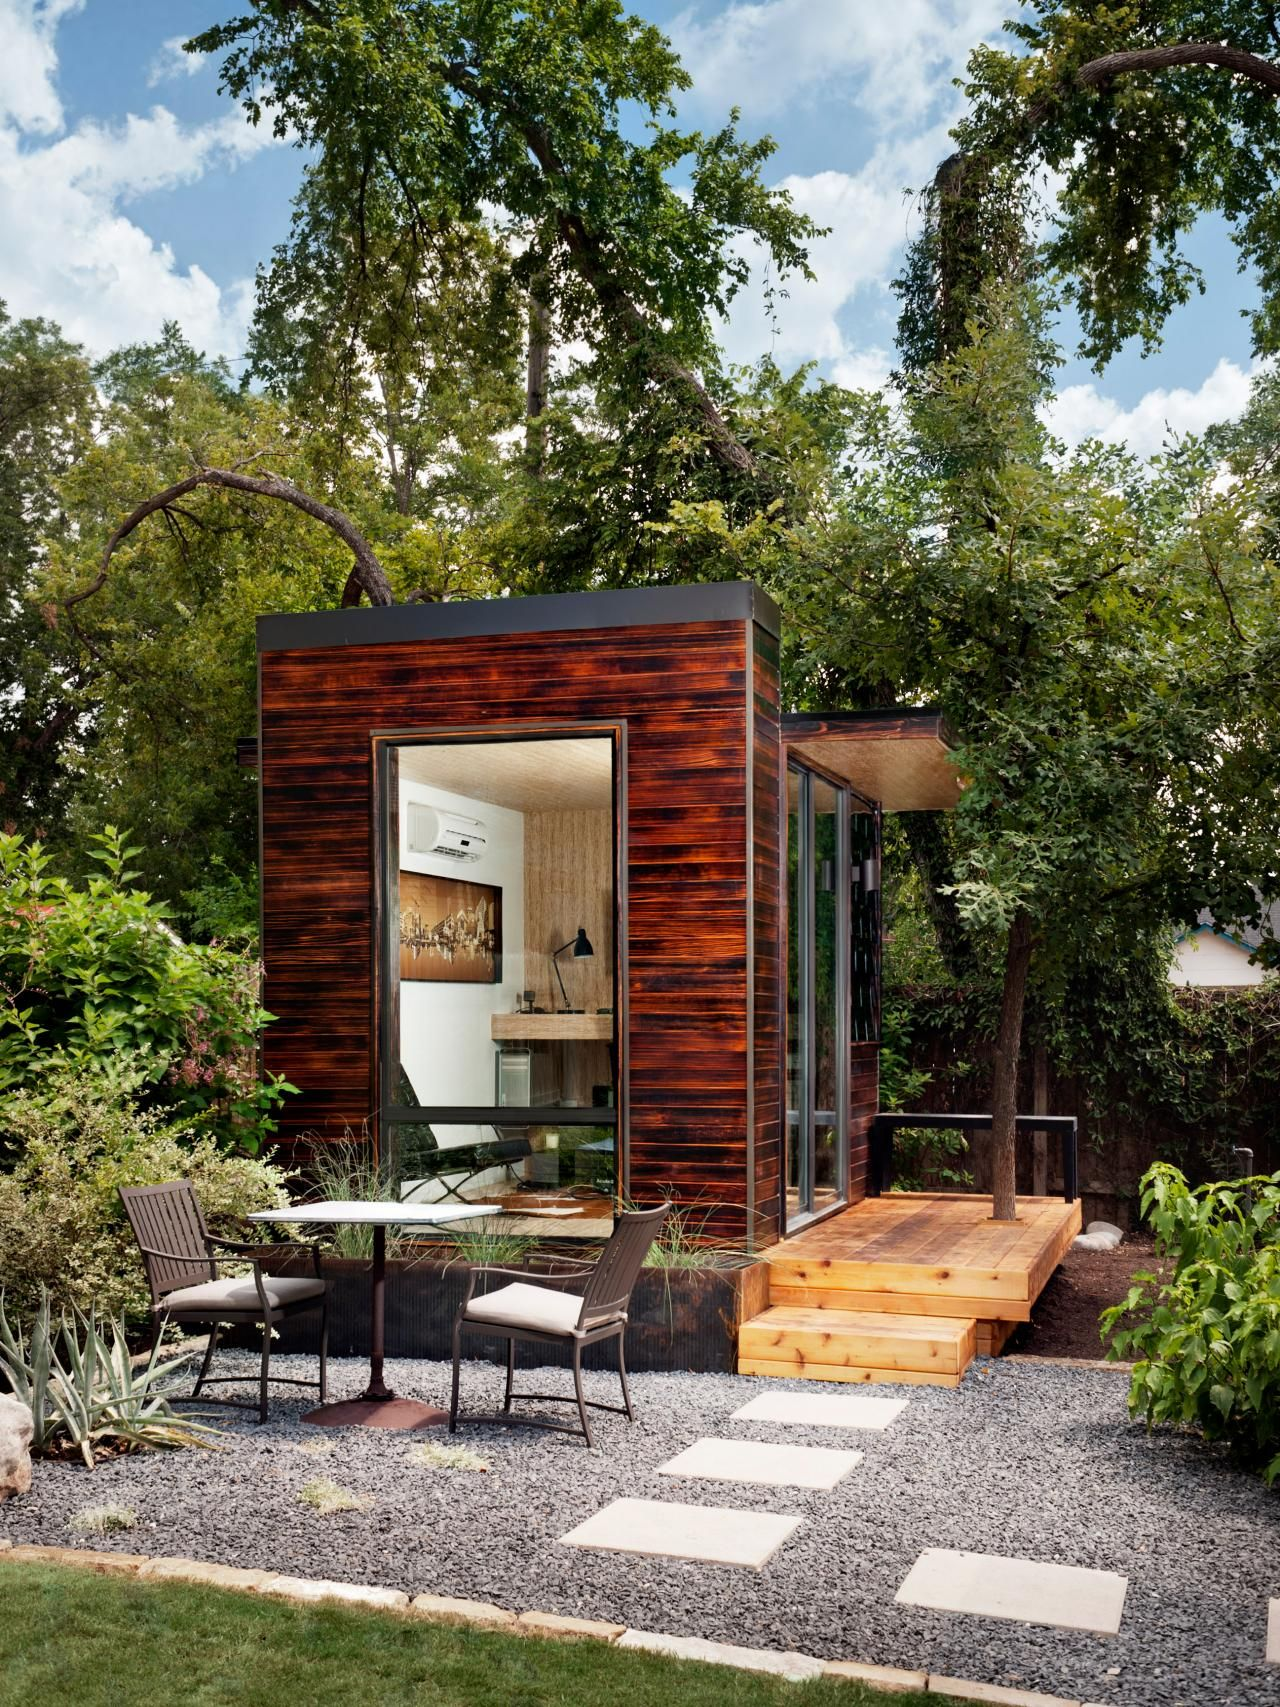 backyard home office. HGTV Fresh Faces Of Design - Small Spaces That Live Large: Tiny Backyard Home Office By Mike Speciale \u0026 Kimber Reed \u003e\u003e A